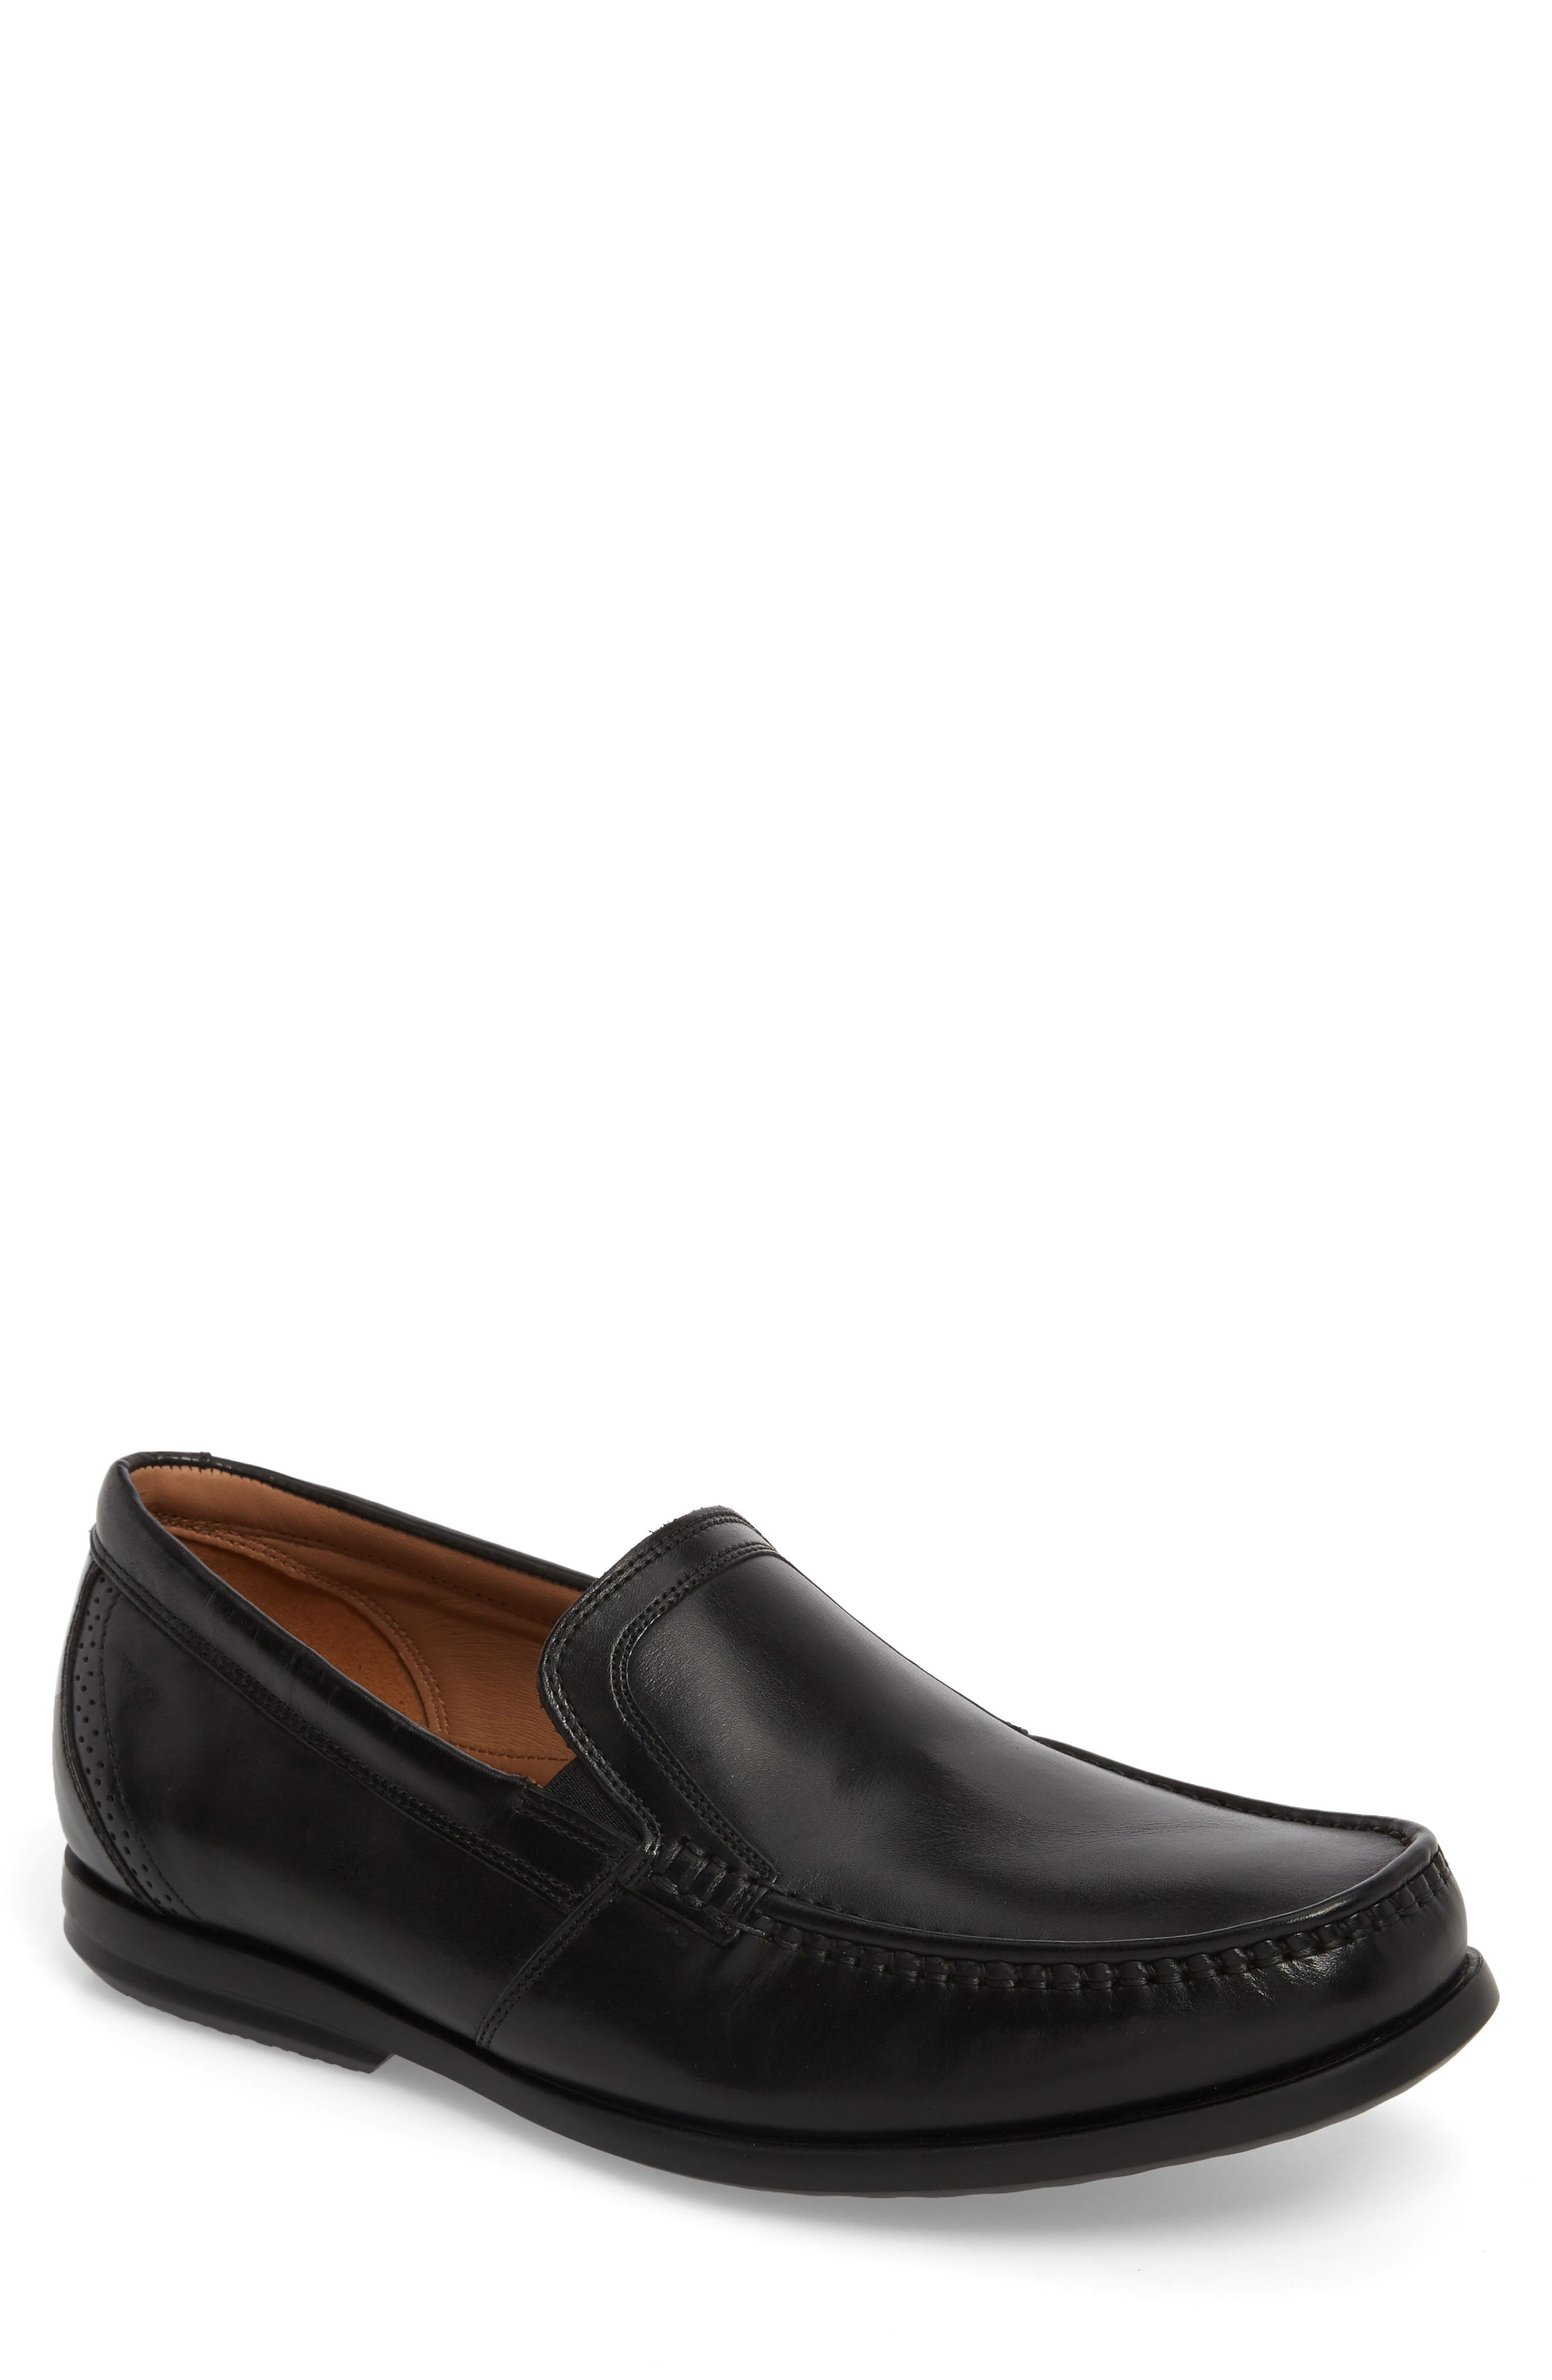 Clarks<sup>®</sup> Ungala Free Venetian Loafer,                             Main thumbnail 1, color,                             Black Leather